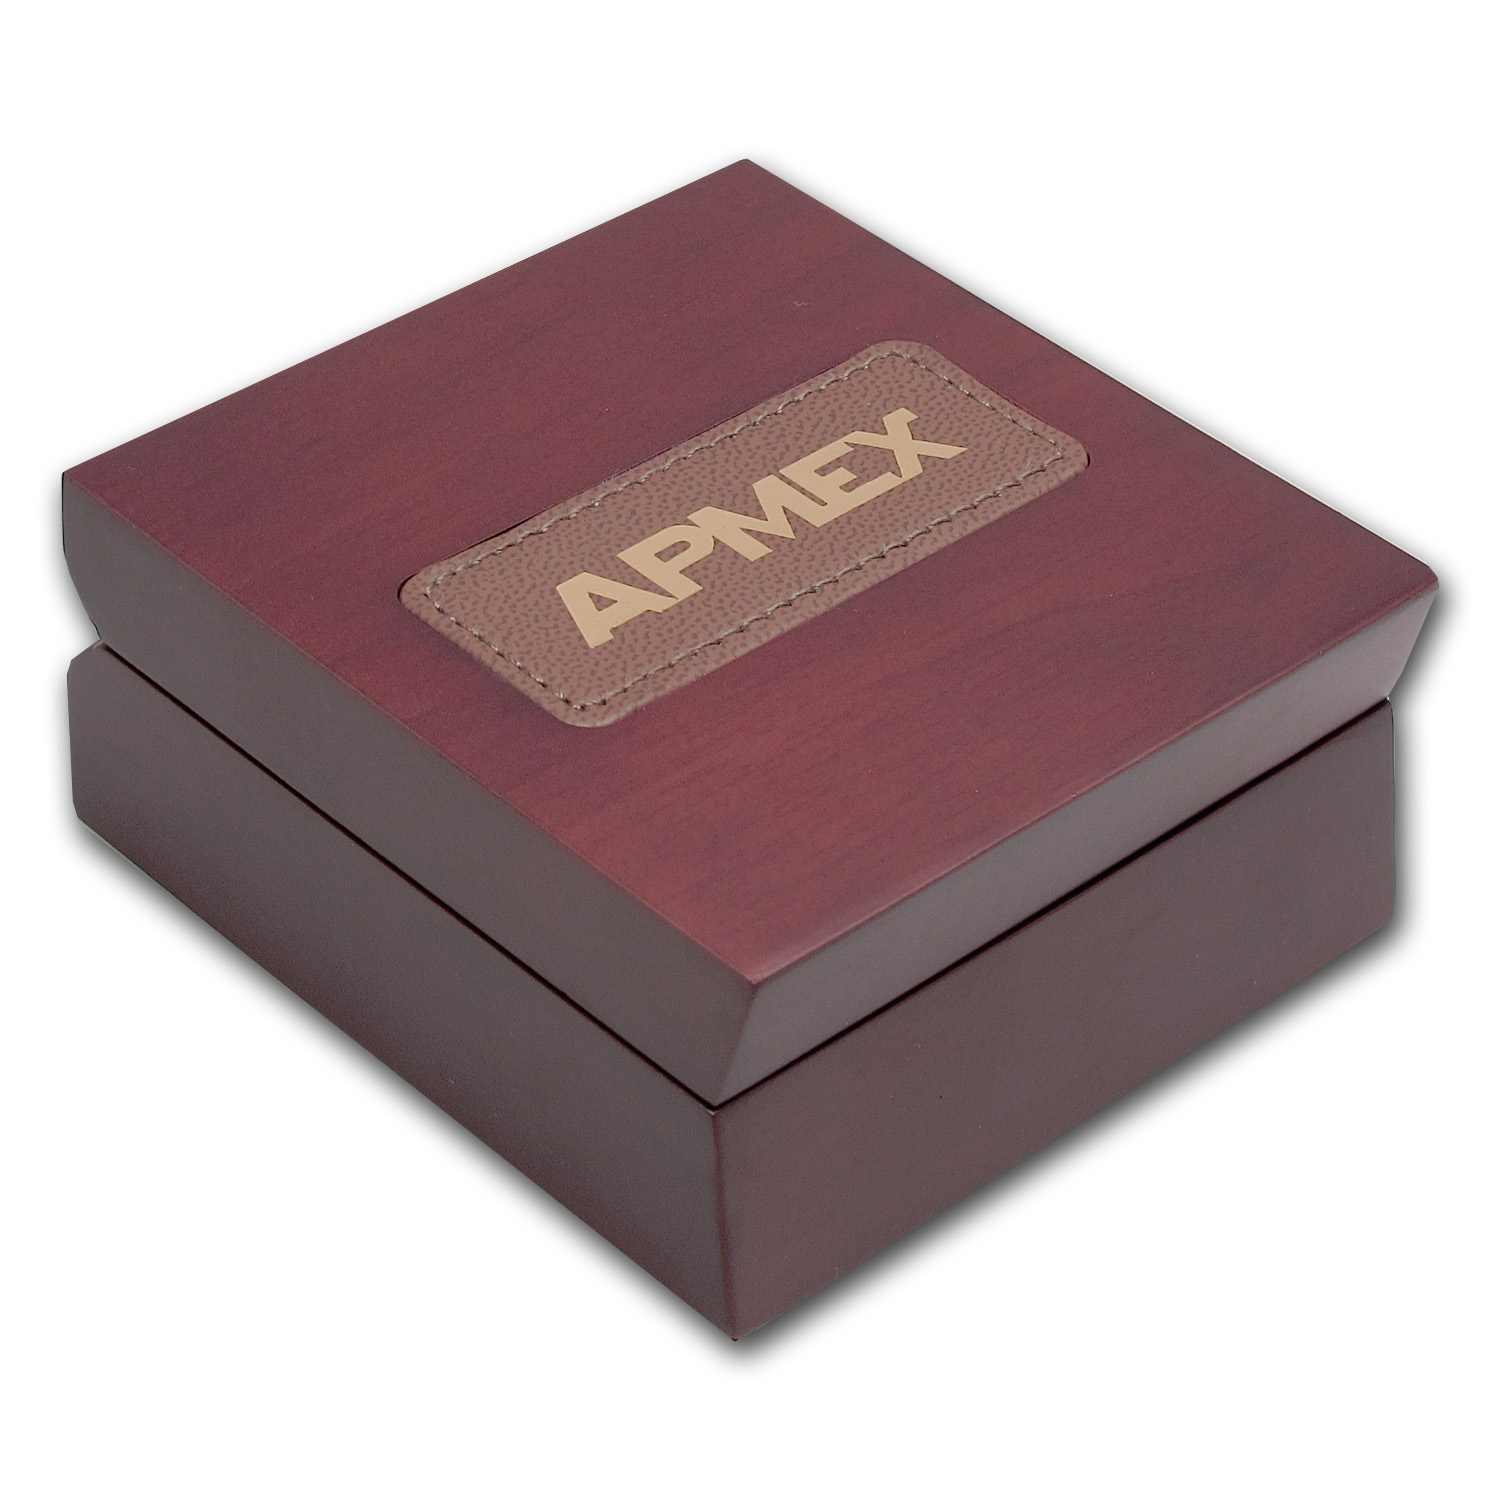 APMEX Wood Presentation Box - 1 kilo Pamp Gold Bar